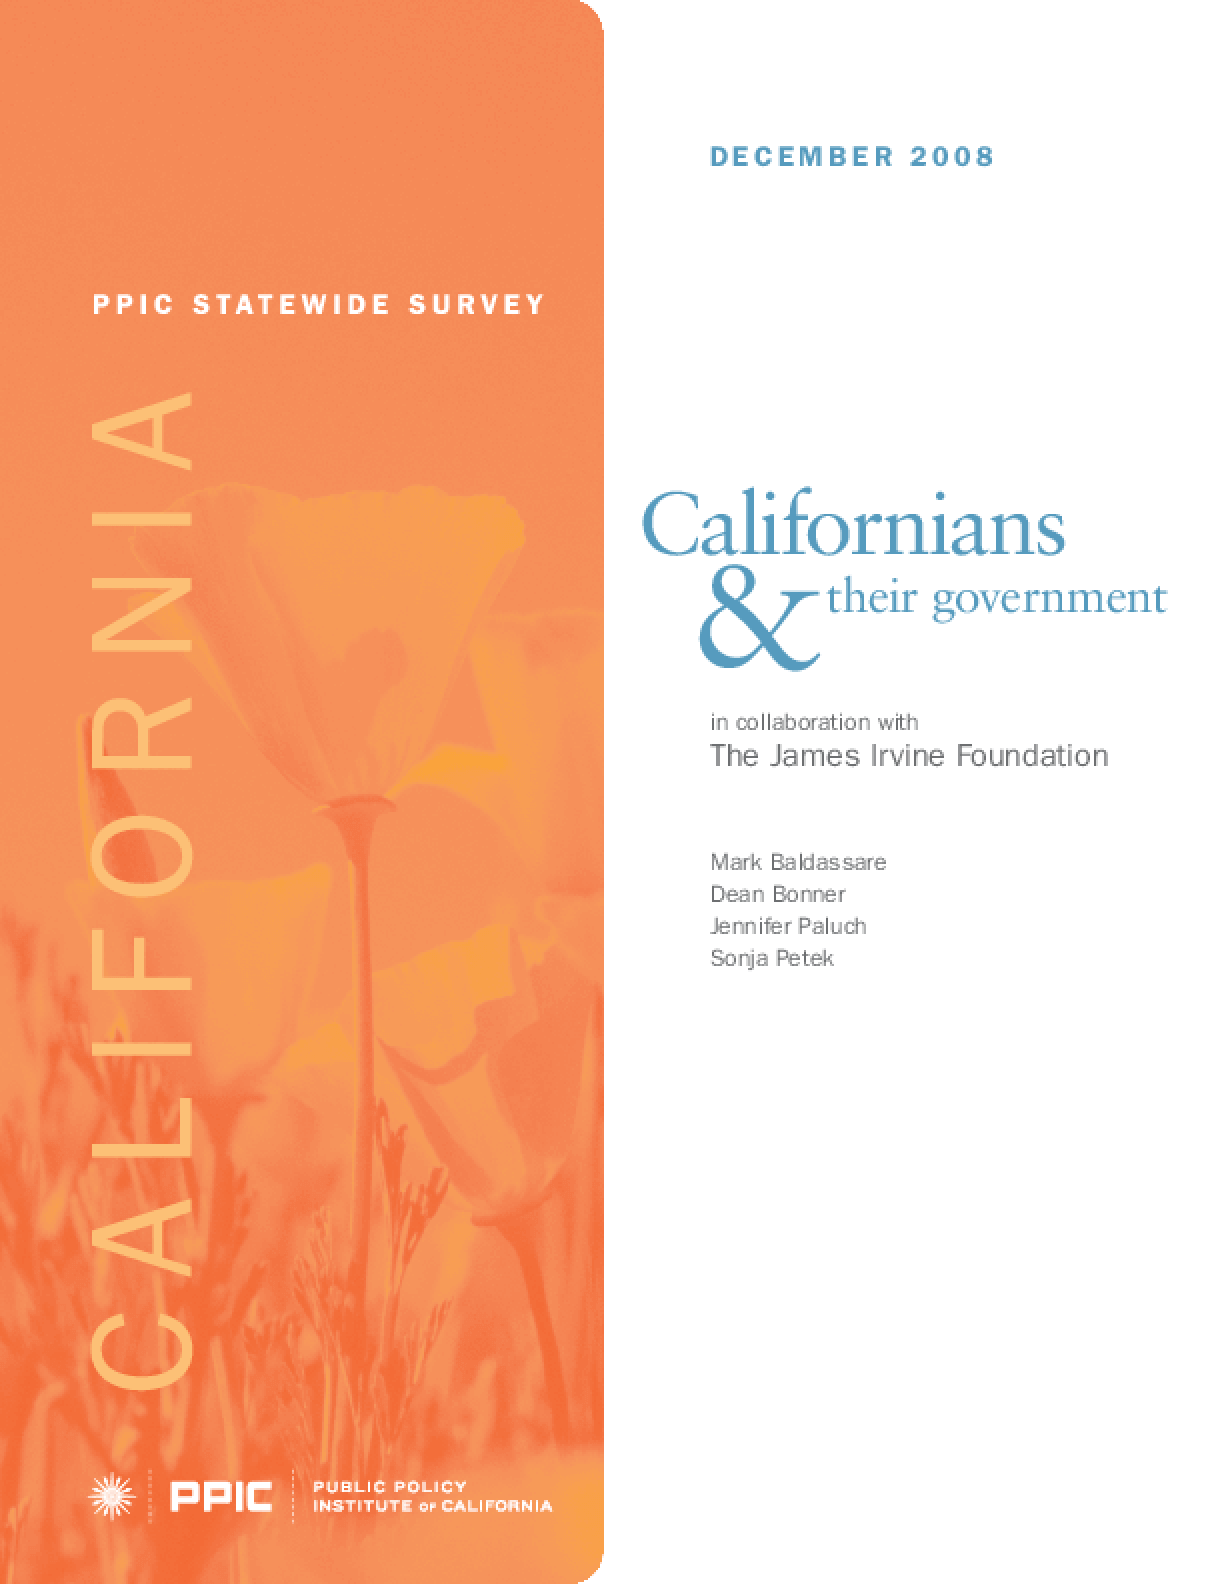 PPIC Statewide Survey: Californians & Their Government 2008